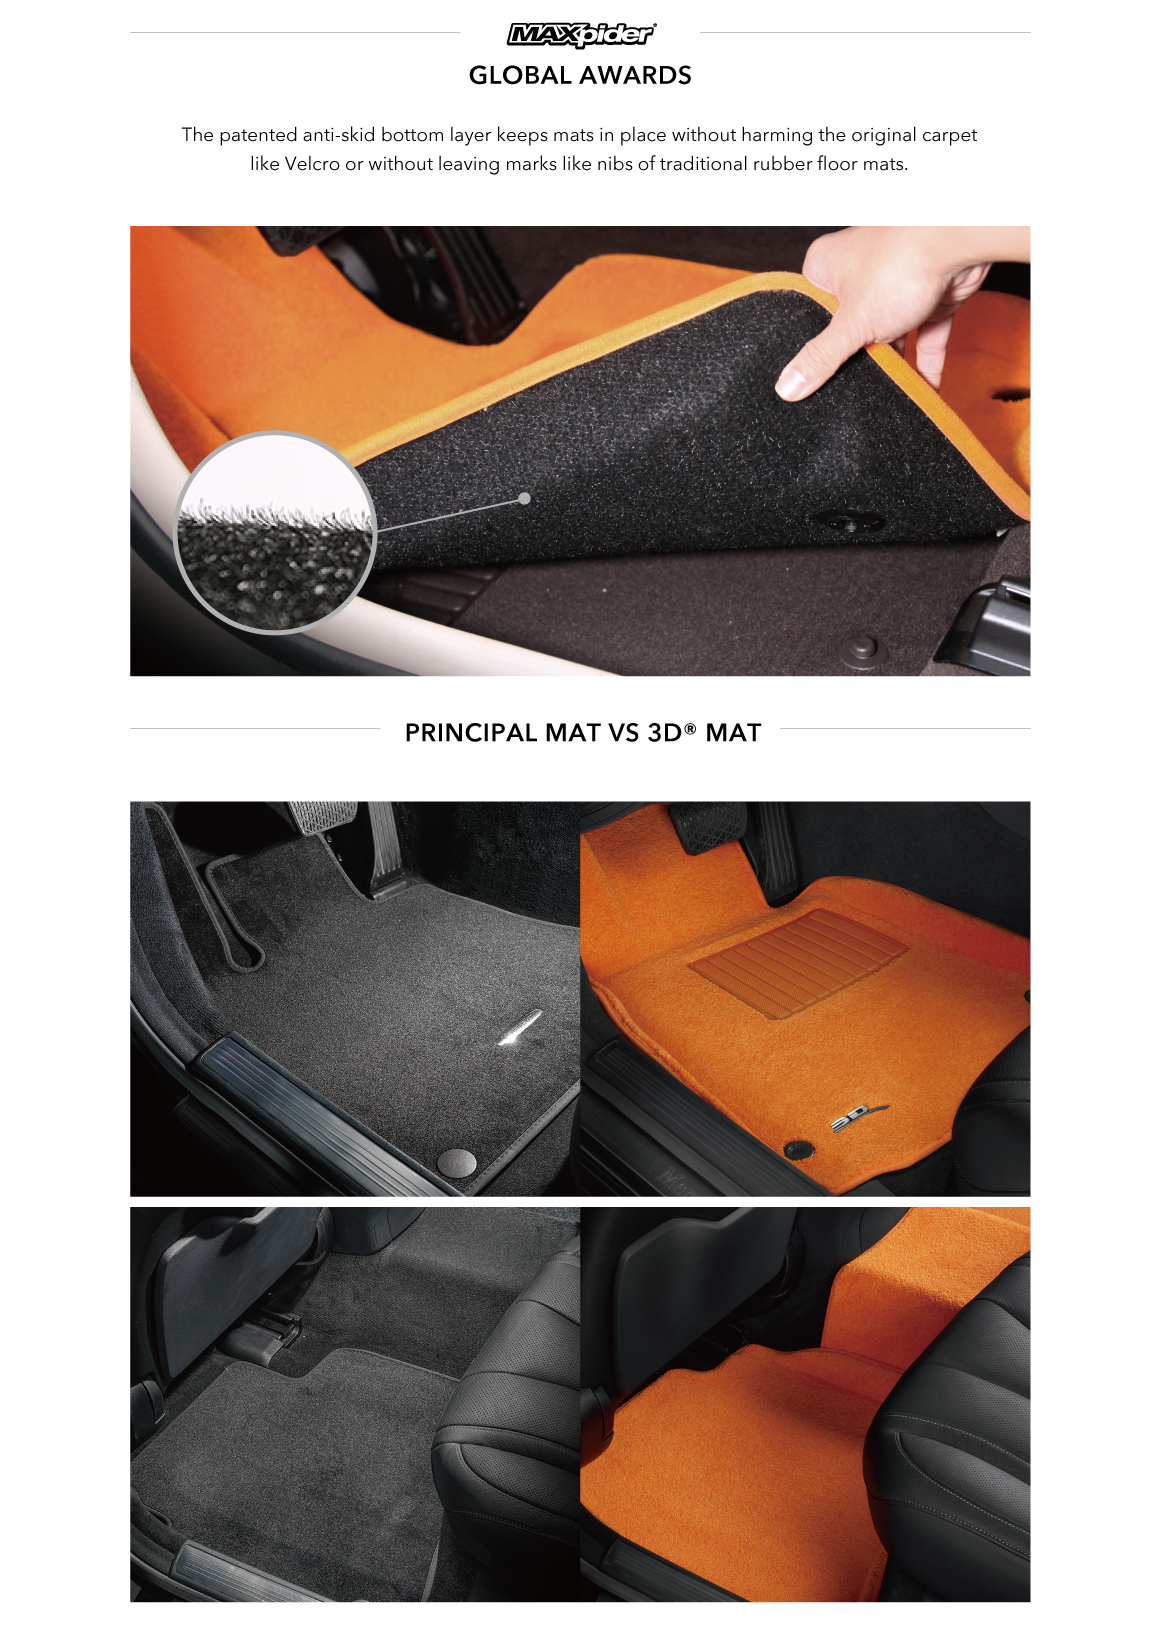 Hyundai Verna Award Winning Car Floor Mats